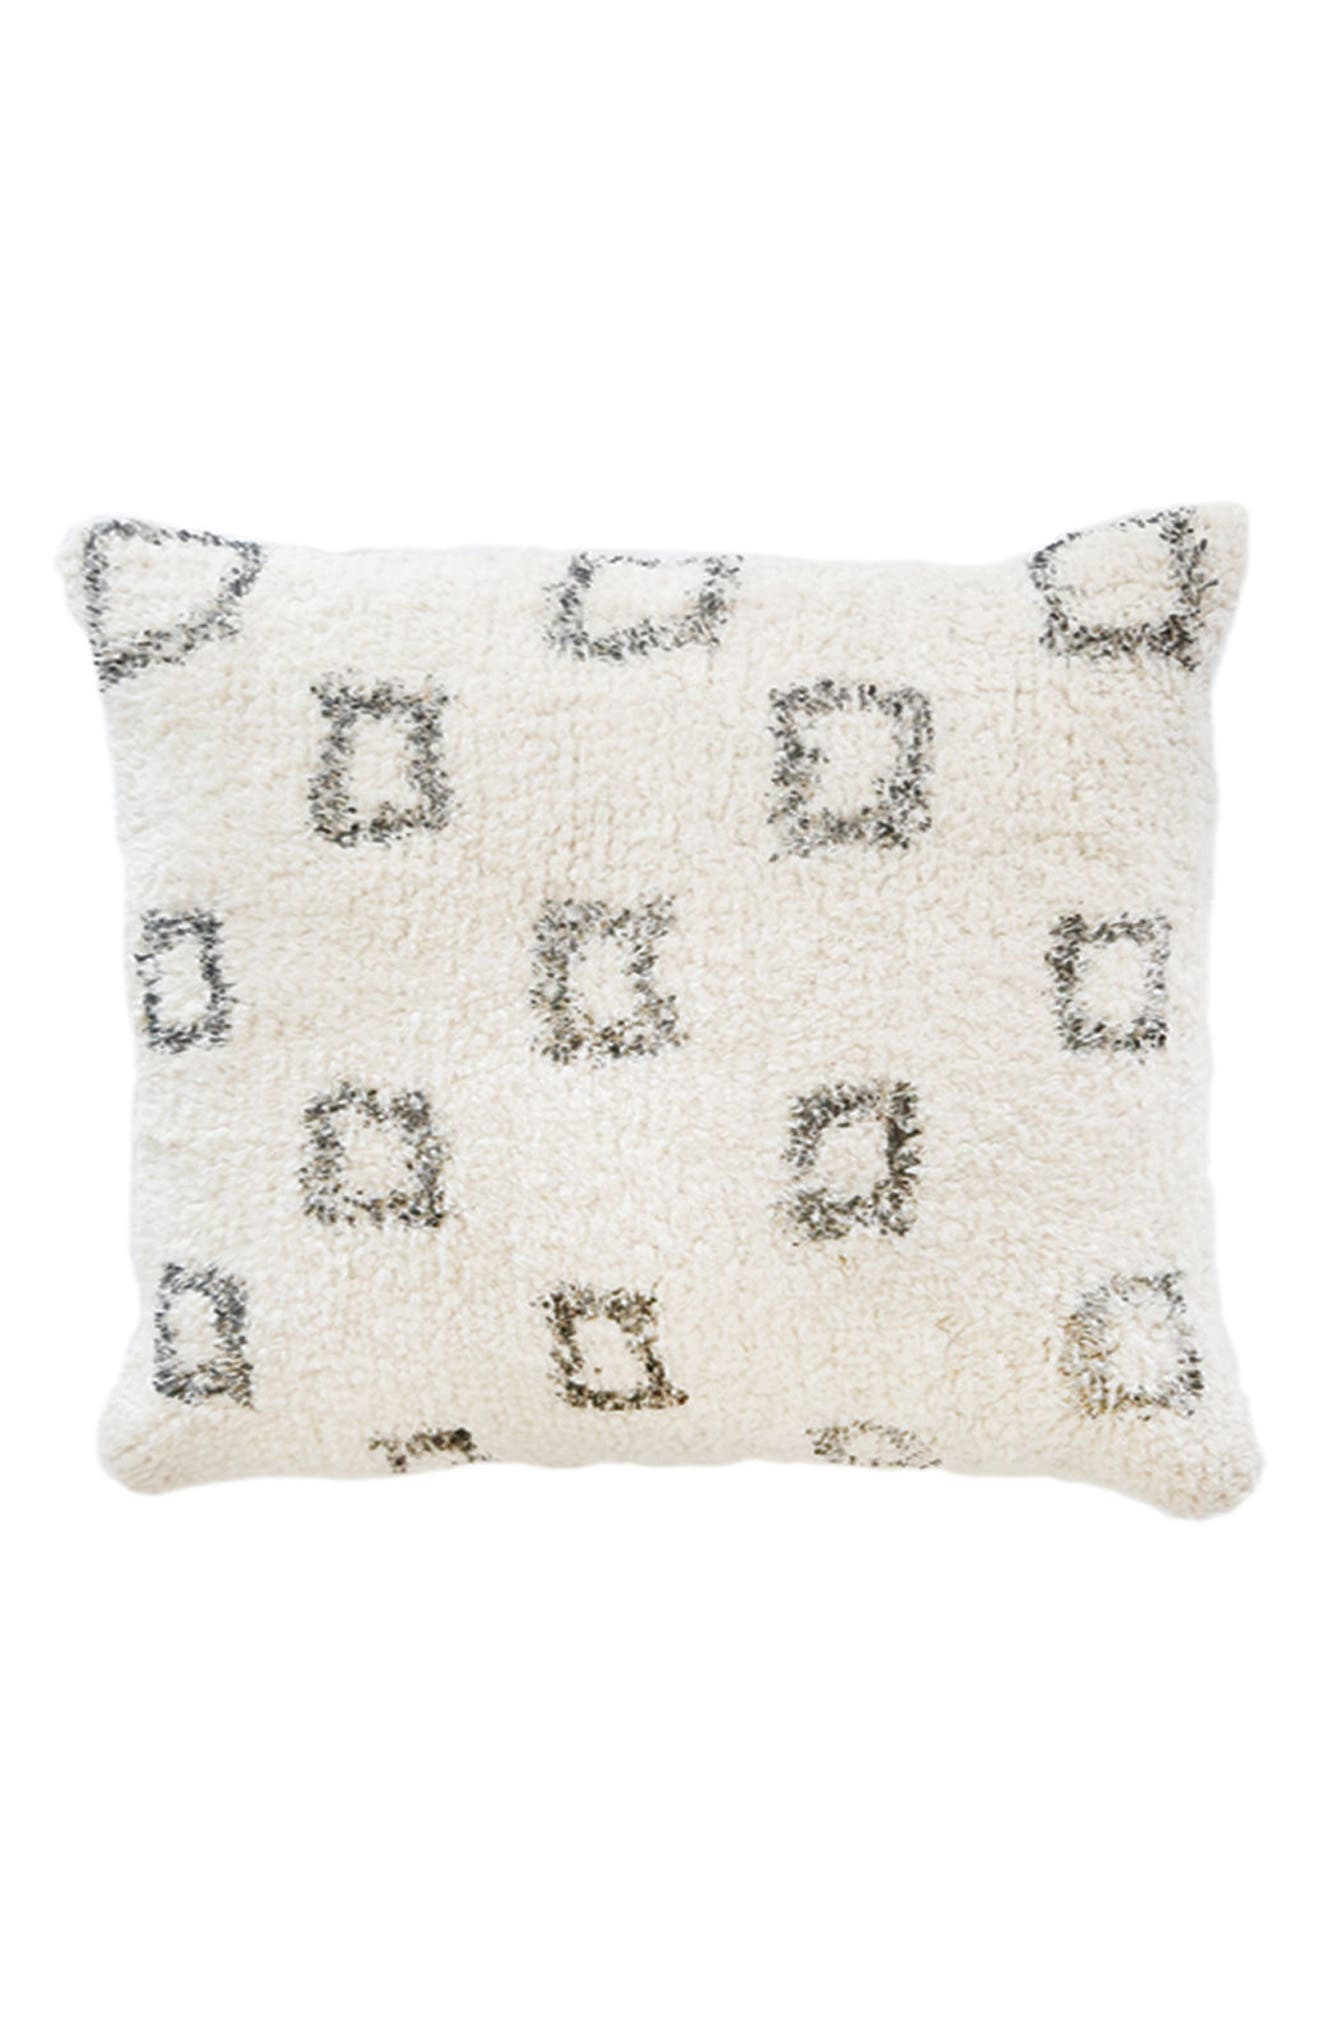 Alternate Image 1 Selected - Pom Pom at Home Bowie Big Accent Pillow